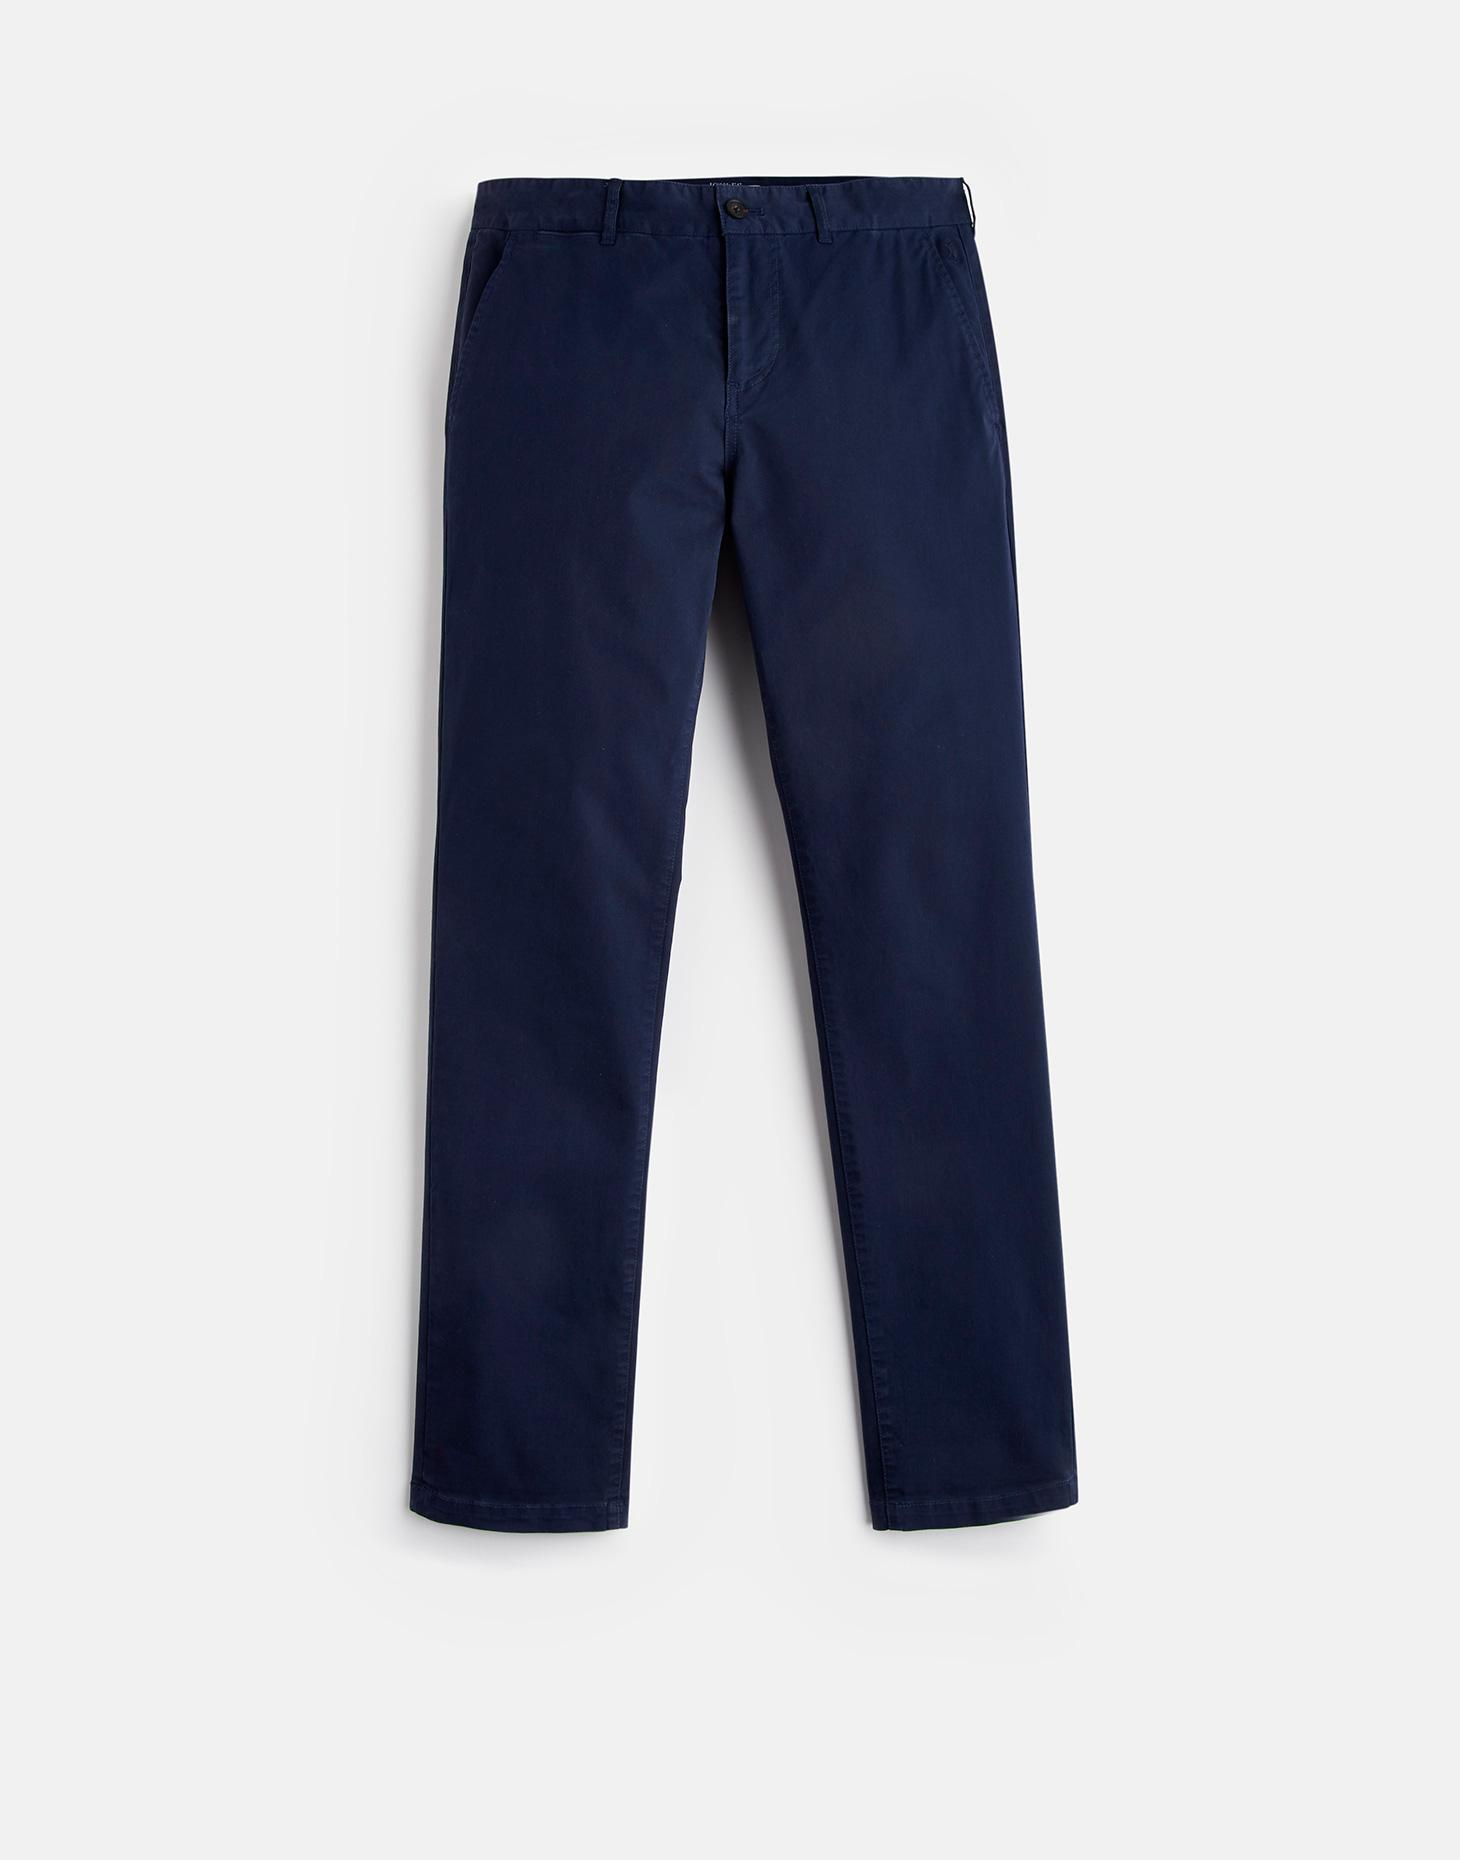 Joules French Navy LAUNDERED Chinos